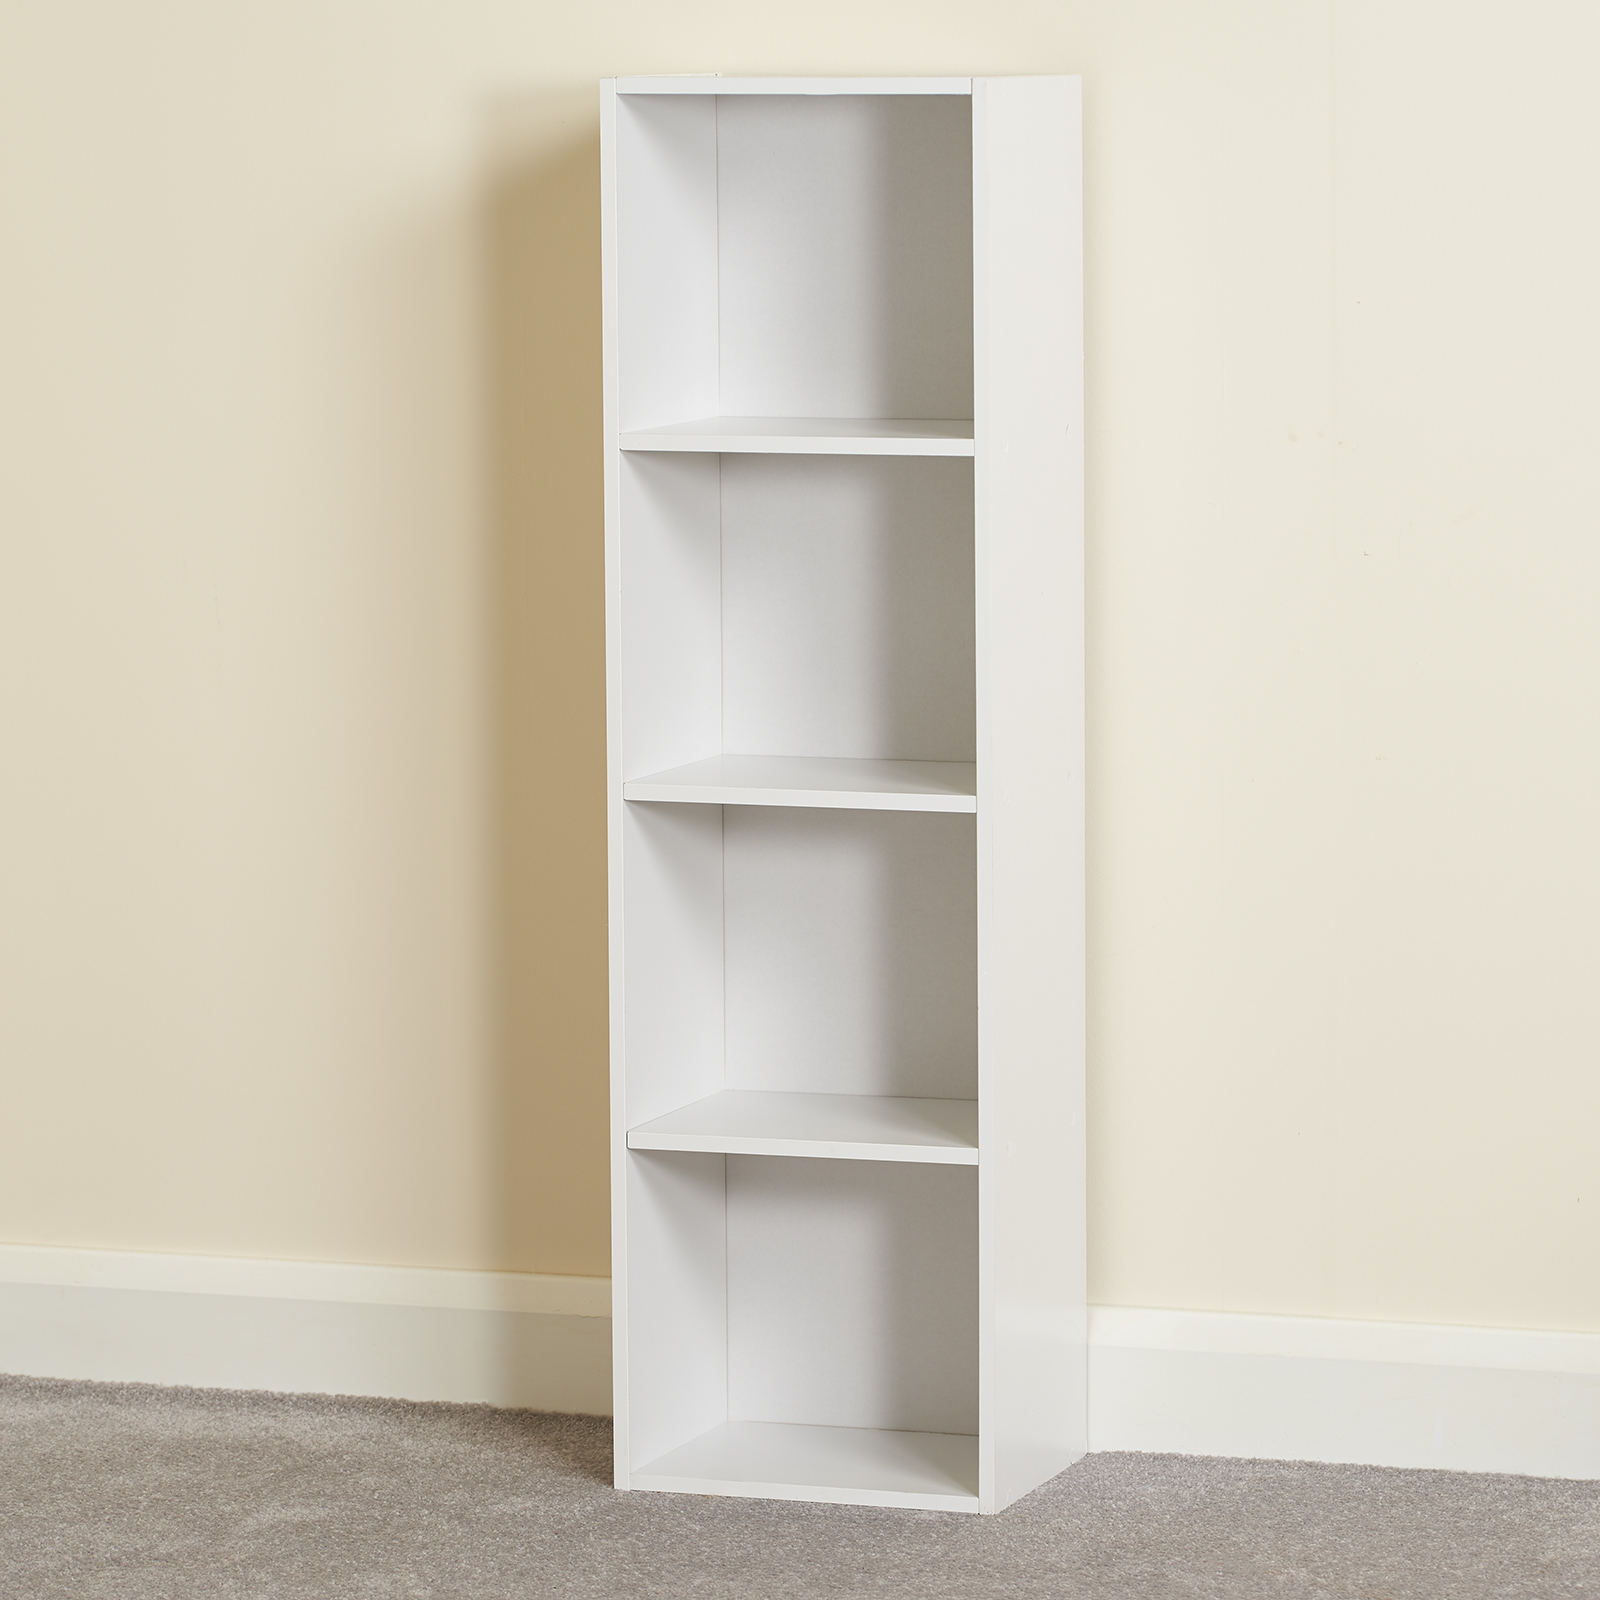 Hartleys-4-Tier-White-Bookcase-Wooden-Display-Shelving-Unit-amp-Fabric-Storage-Box thumbnail 22